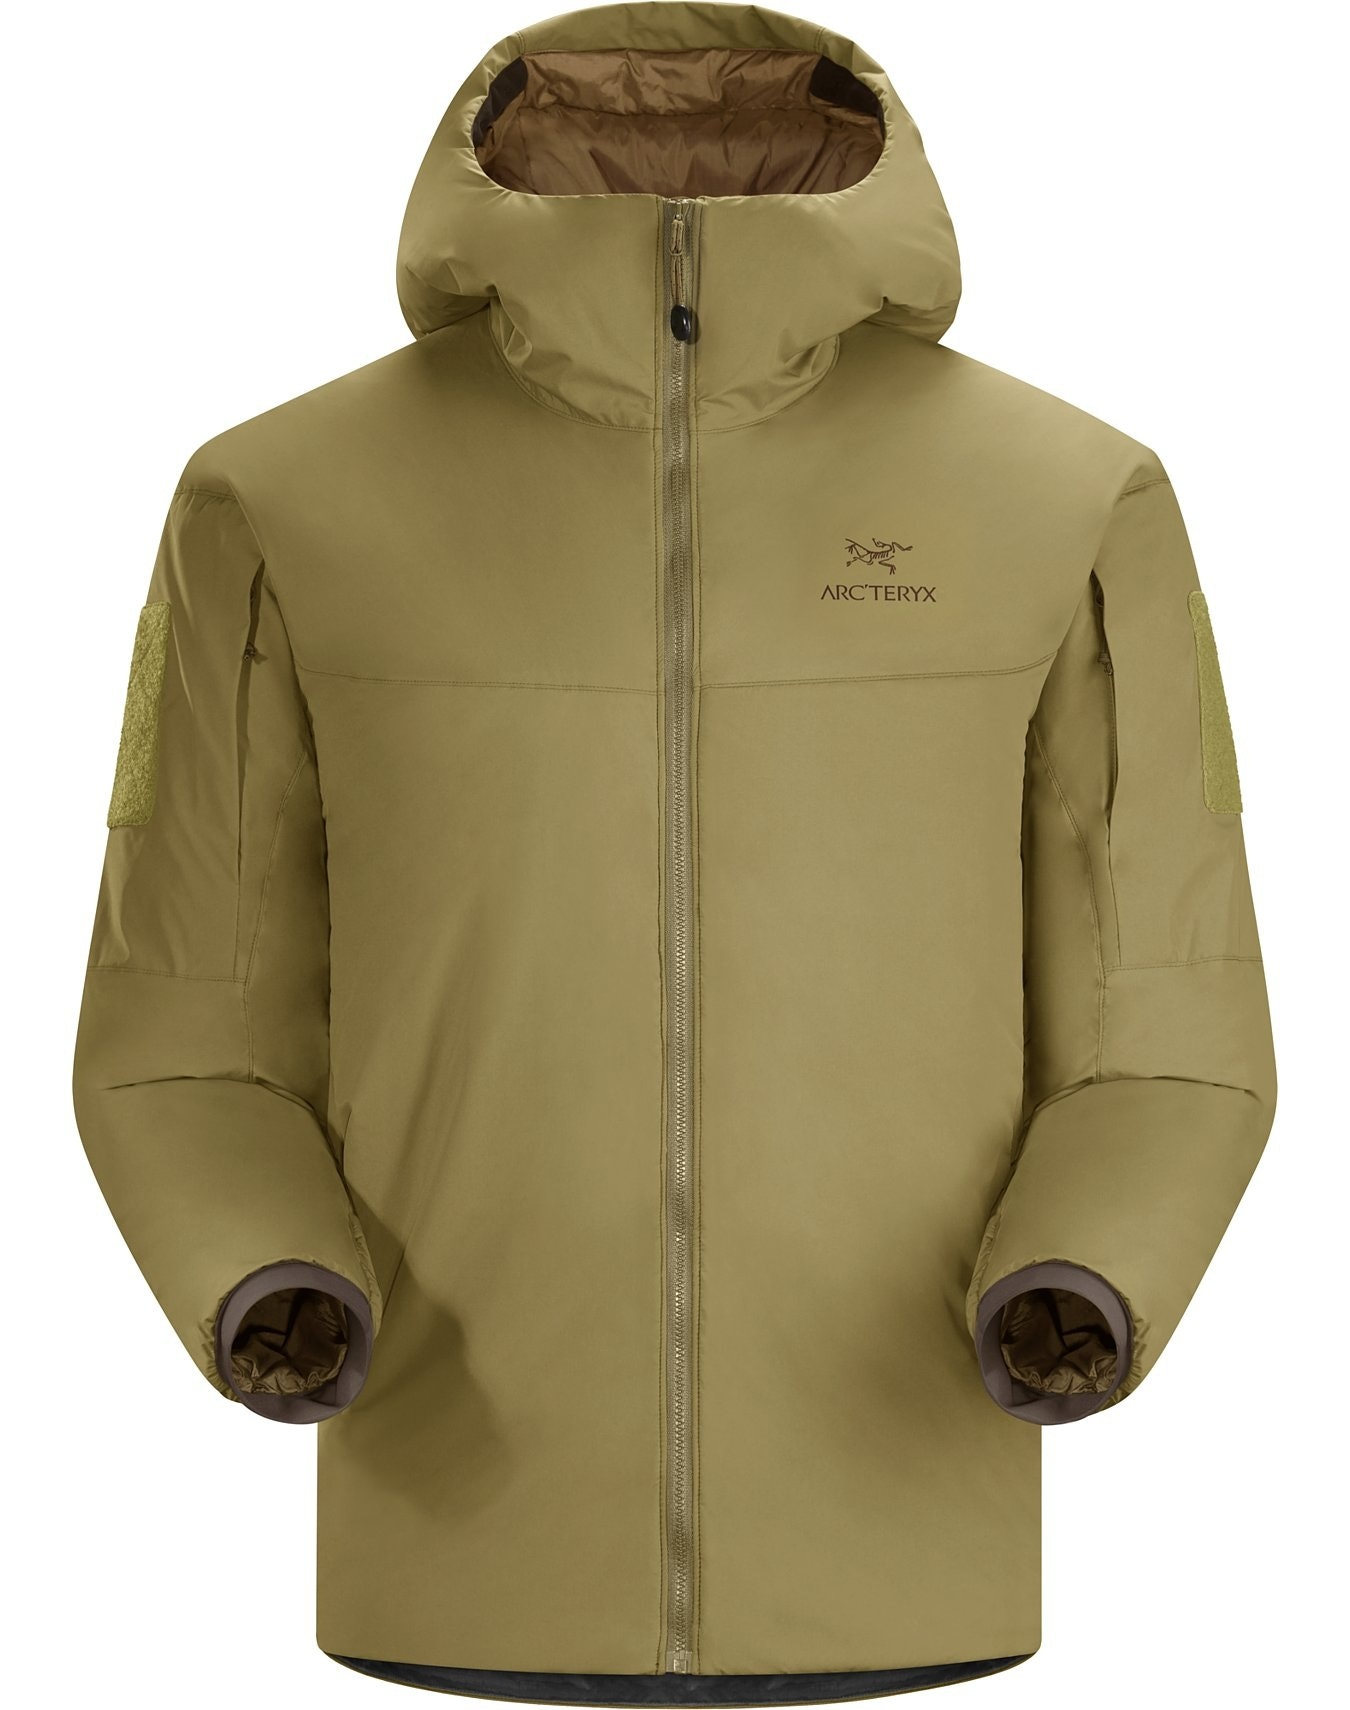 Arc'teryx LEAF Arc'teryx LEAF (FACTORY SECOND) Cold WX Hoody LT Men's - SECONDS*